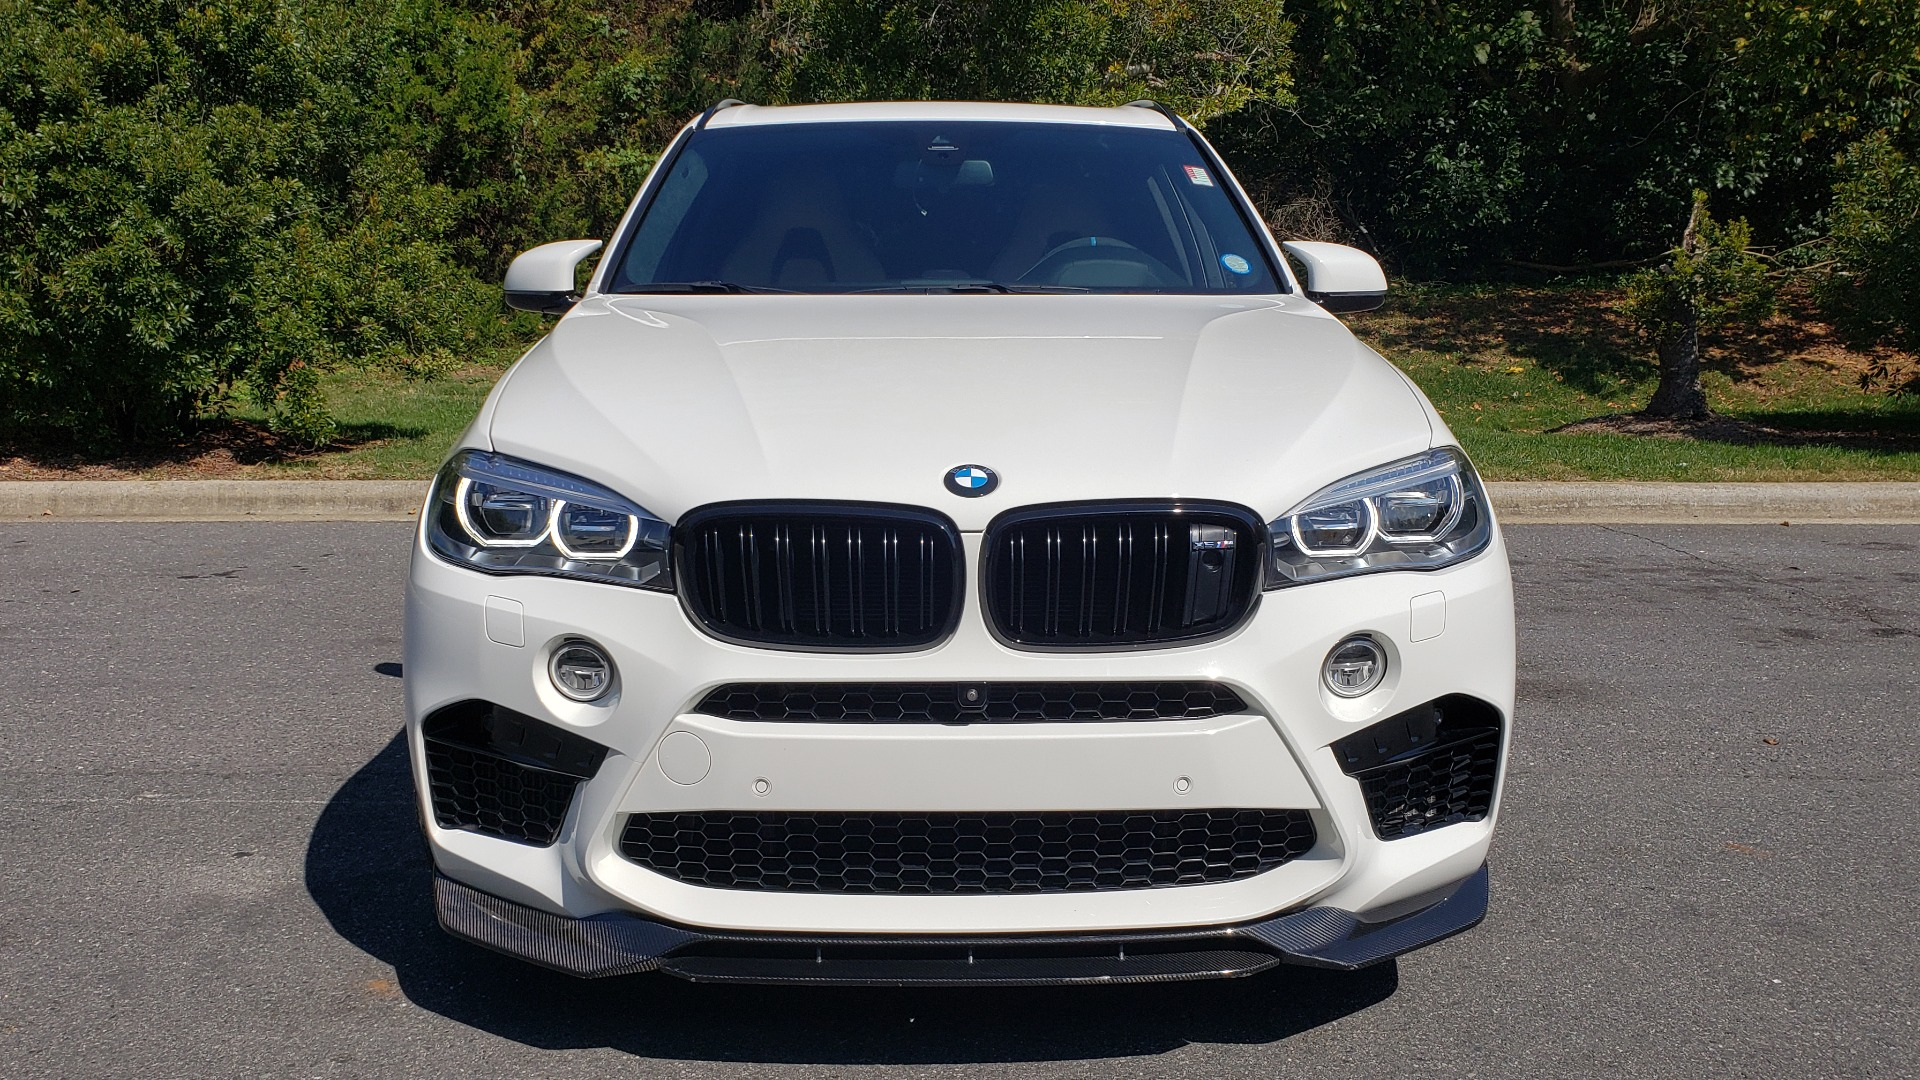 Used 2017 BMW X5 M SPORT / AWD / DRVR ASST / EXEC PKG / B&O SND / NIGHT VIS / PARK ASST for sale Sold at Formula Imports in Charlotte NC 28227 24